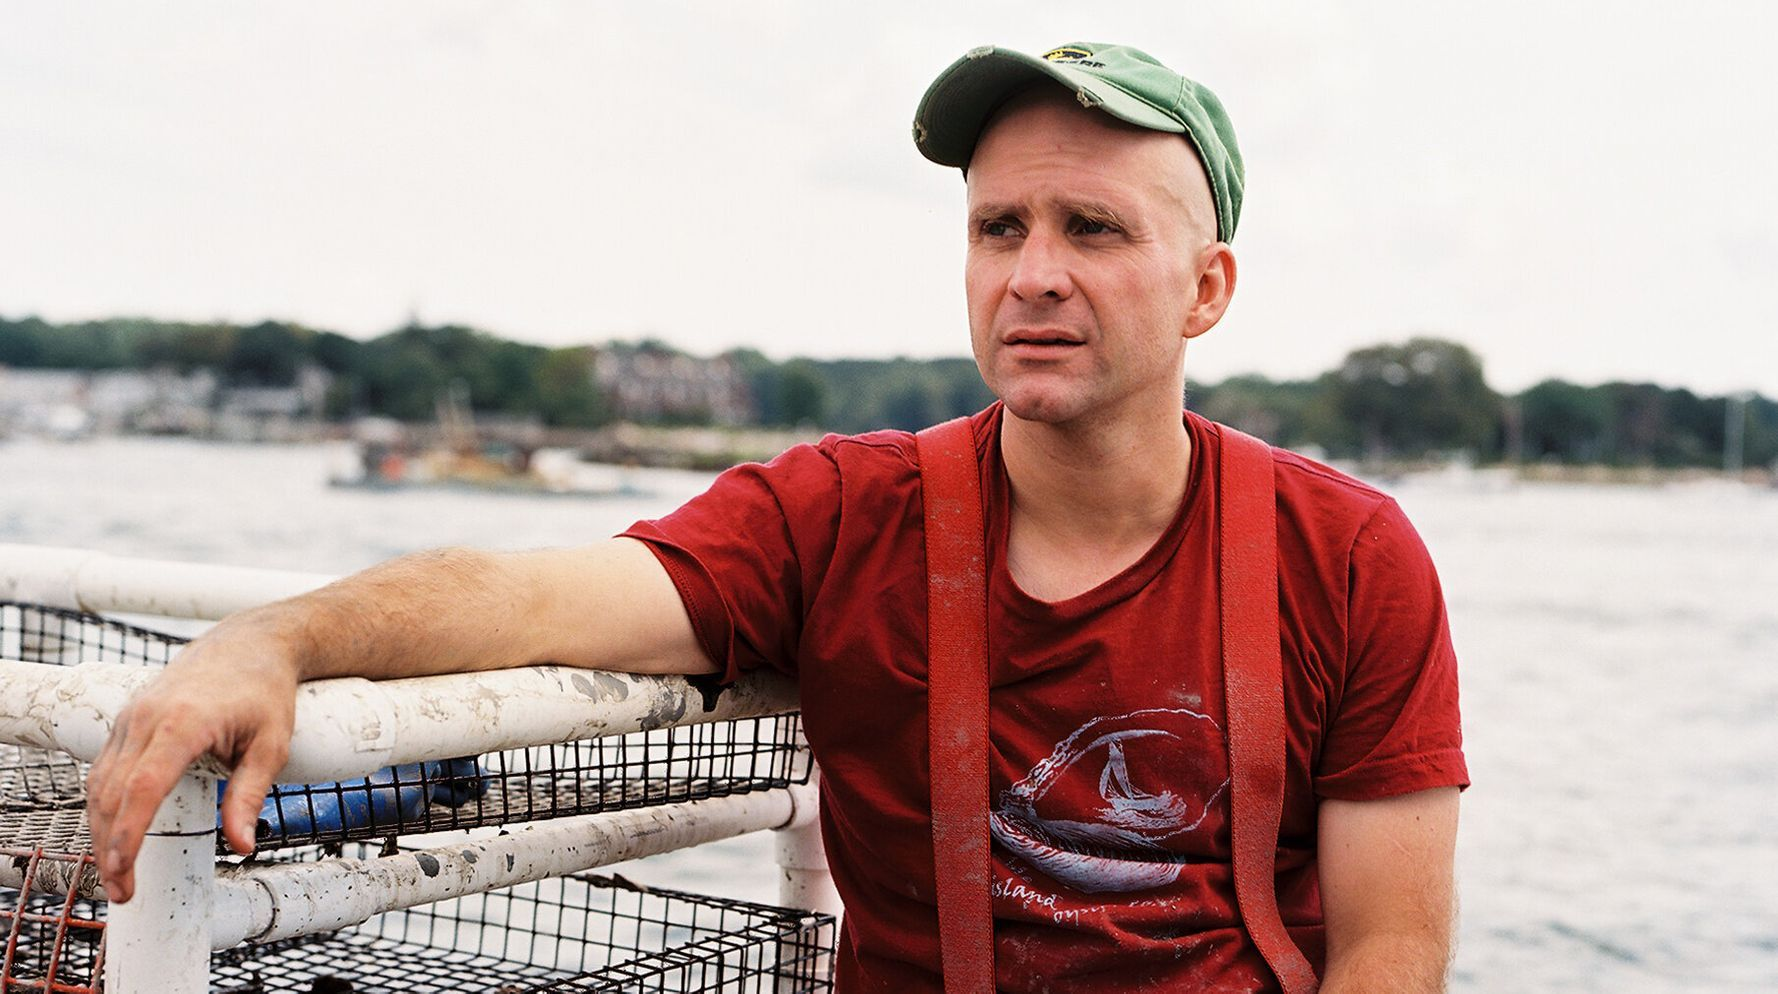 This Fisherman Wants Us To Use The Oceans To Fight Climate